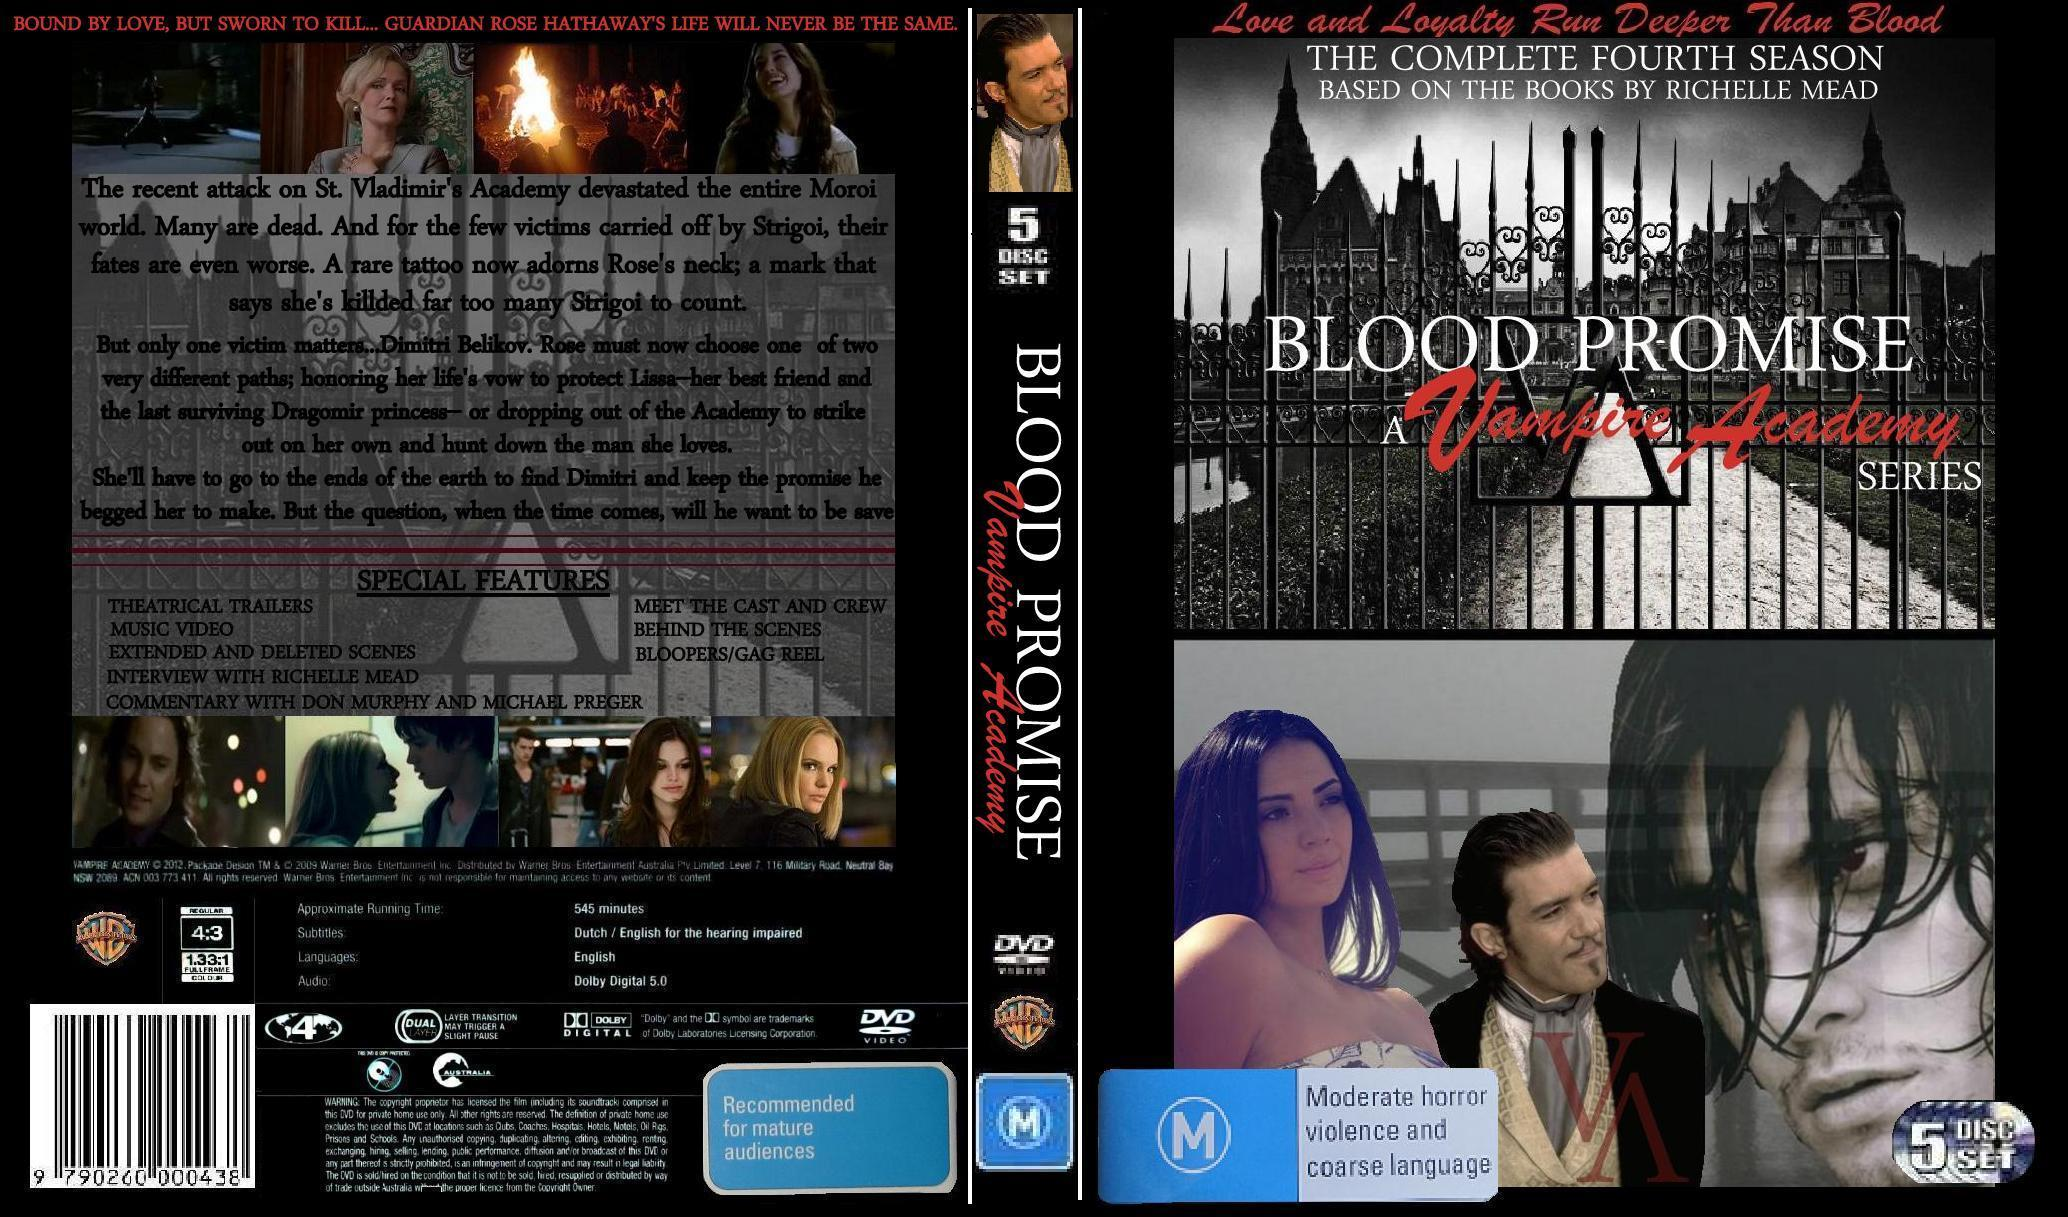 Vampire Academy Dvd Cover Blood Promise Dvd Cove...